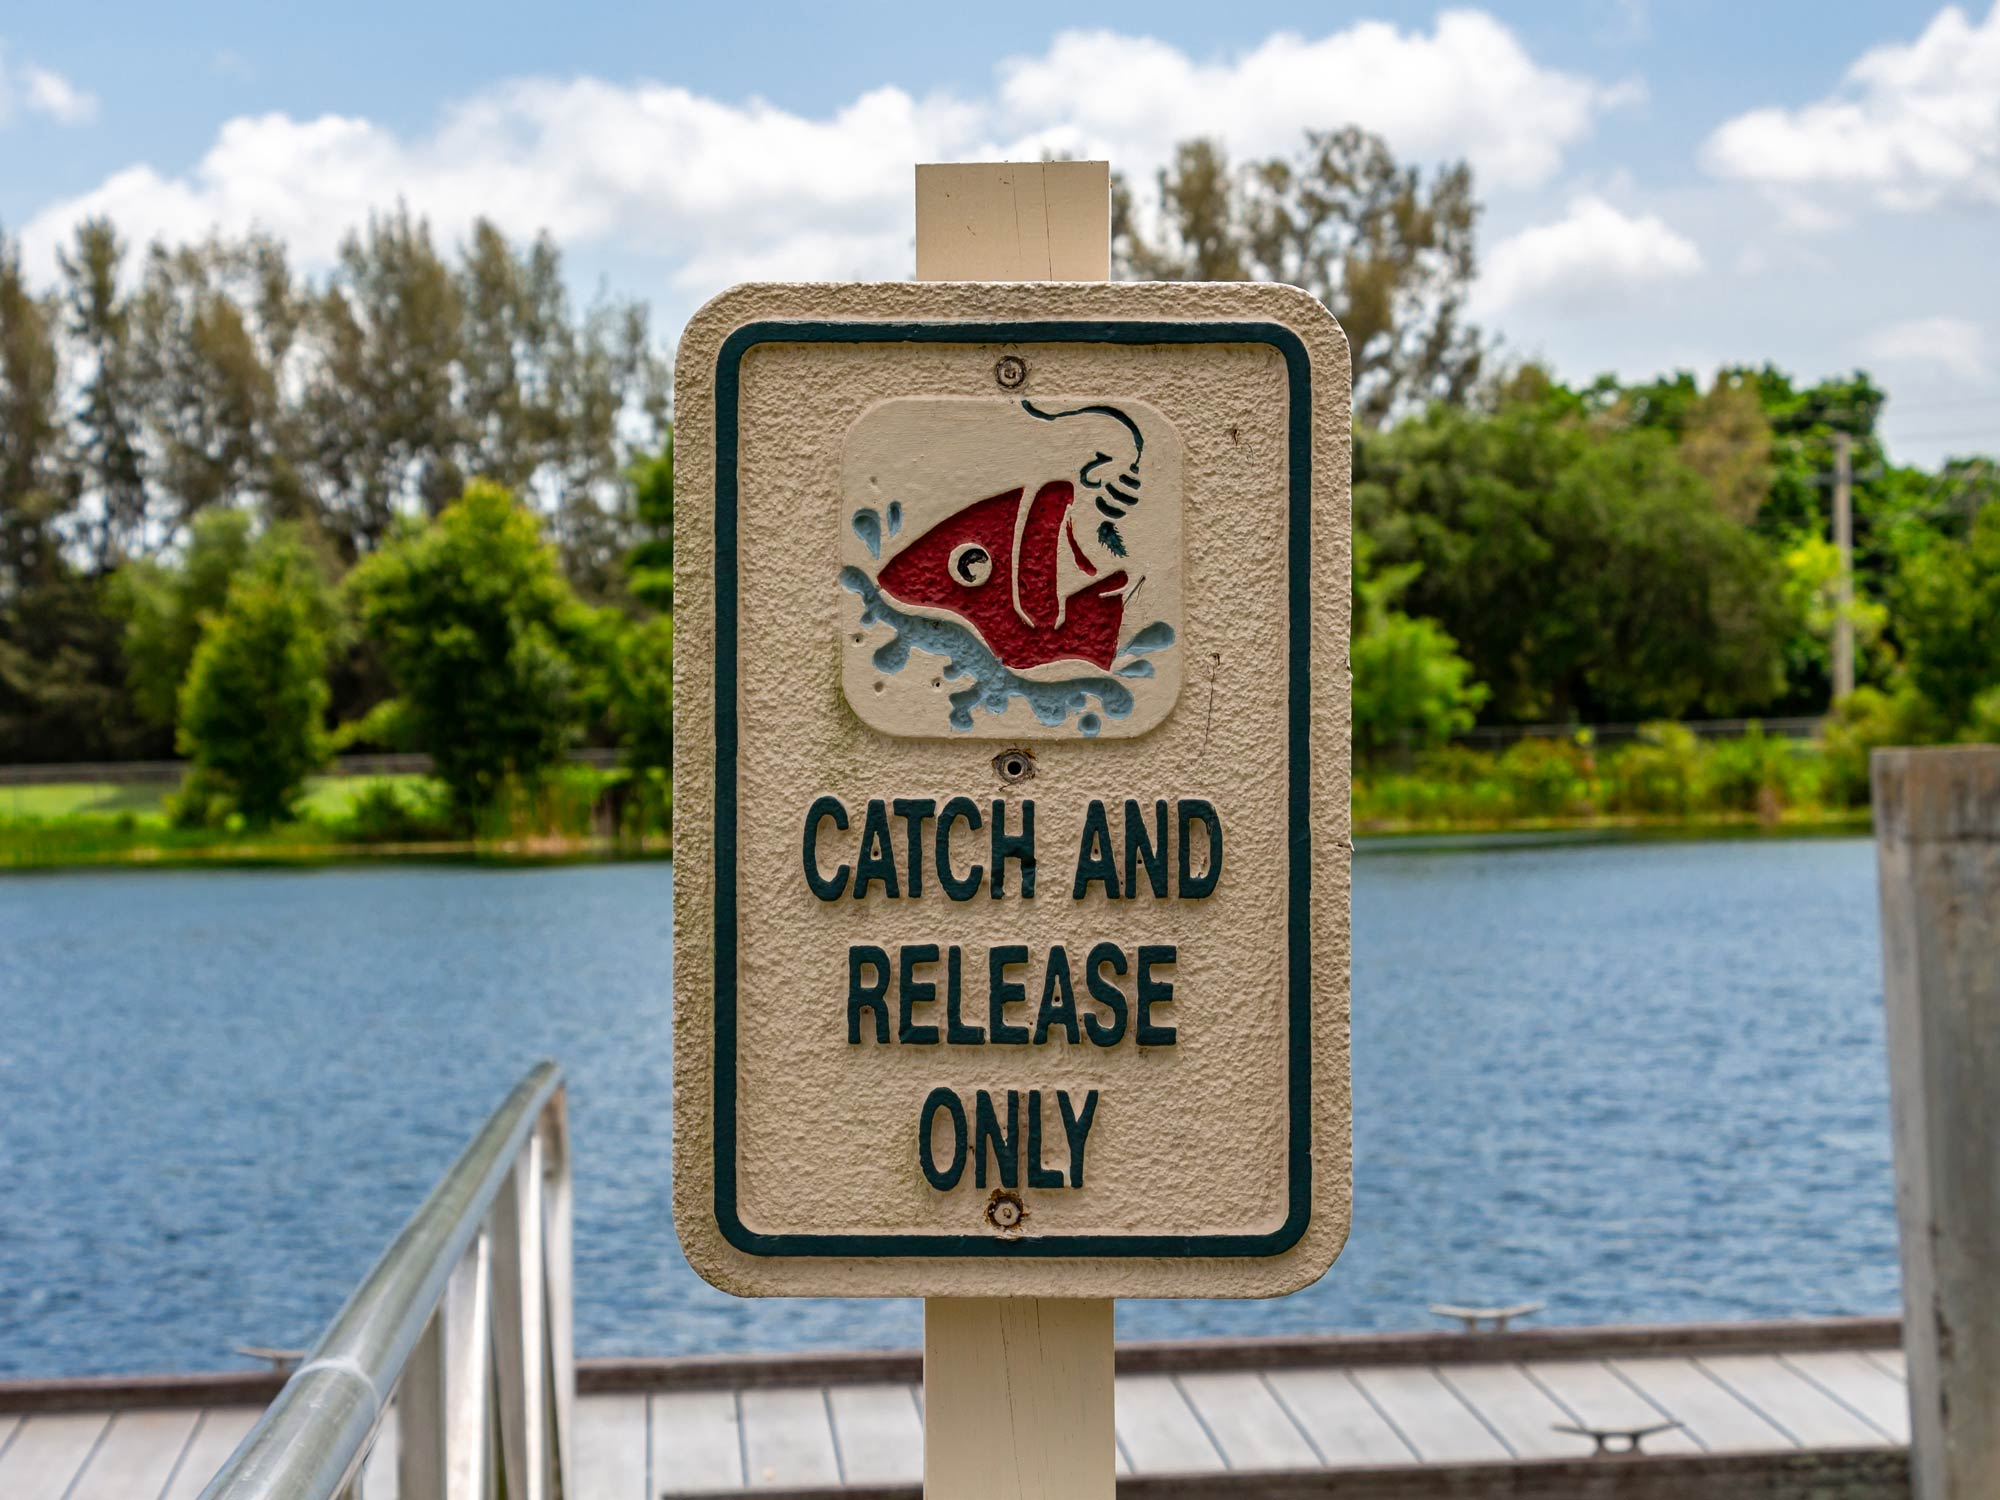 Catch and Release sign on a canal dock